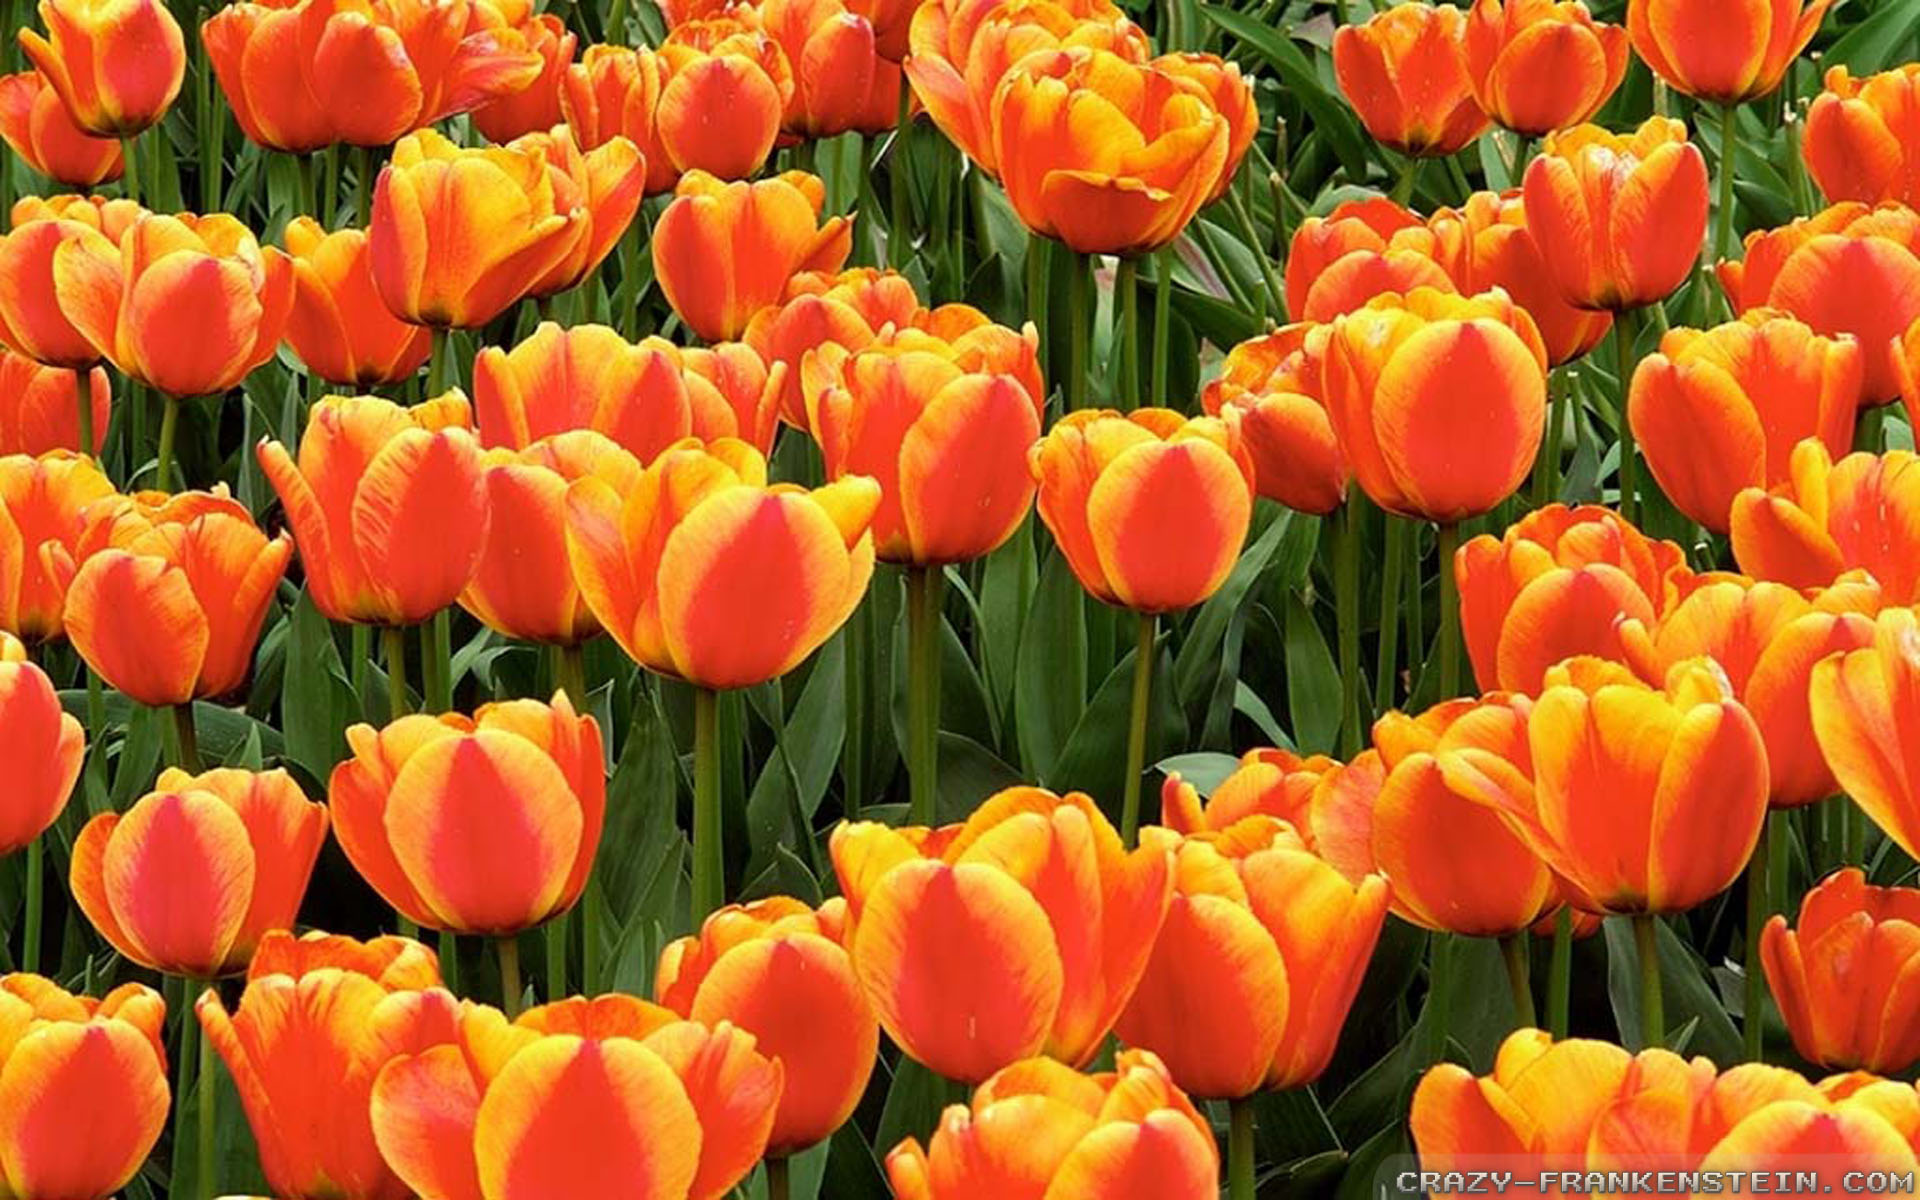 Orange Tulips wallpapers - Crazy Frankenstein